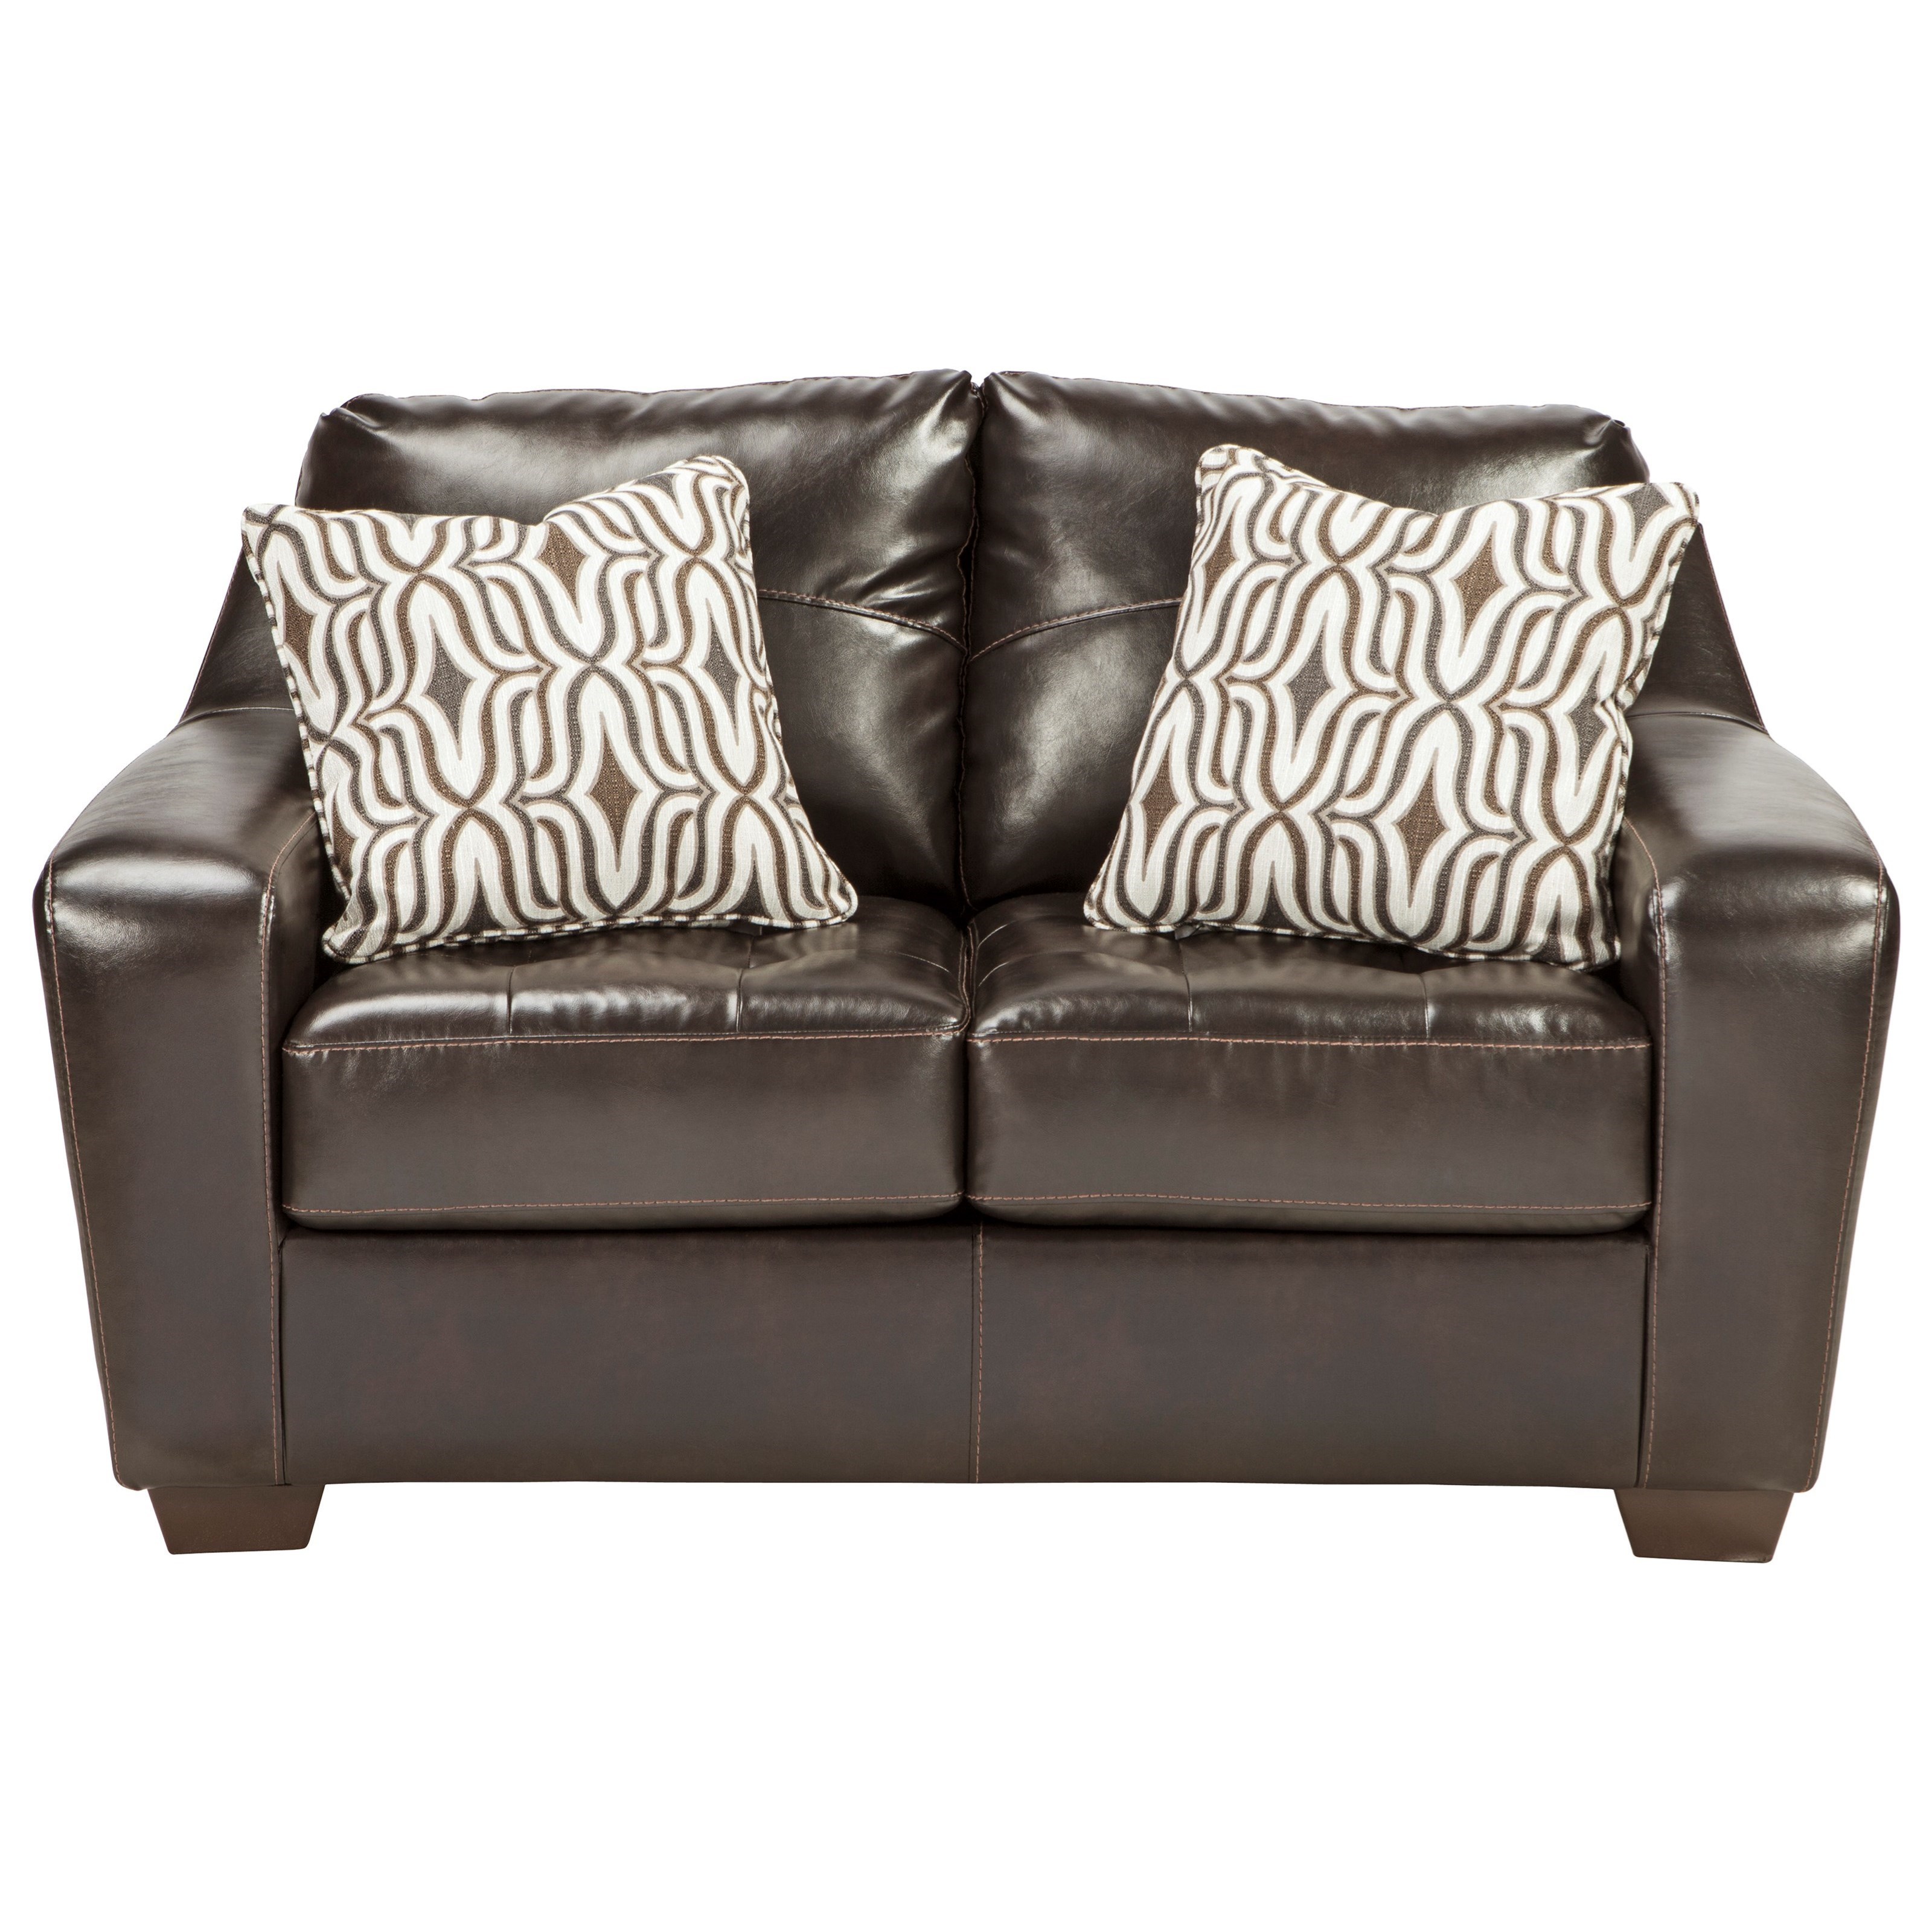 Benchcraft Coppell DuraBlend® Loveseat - Item Number: 5900135